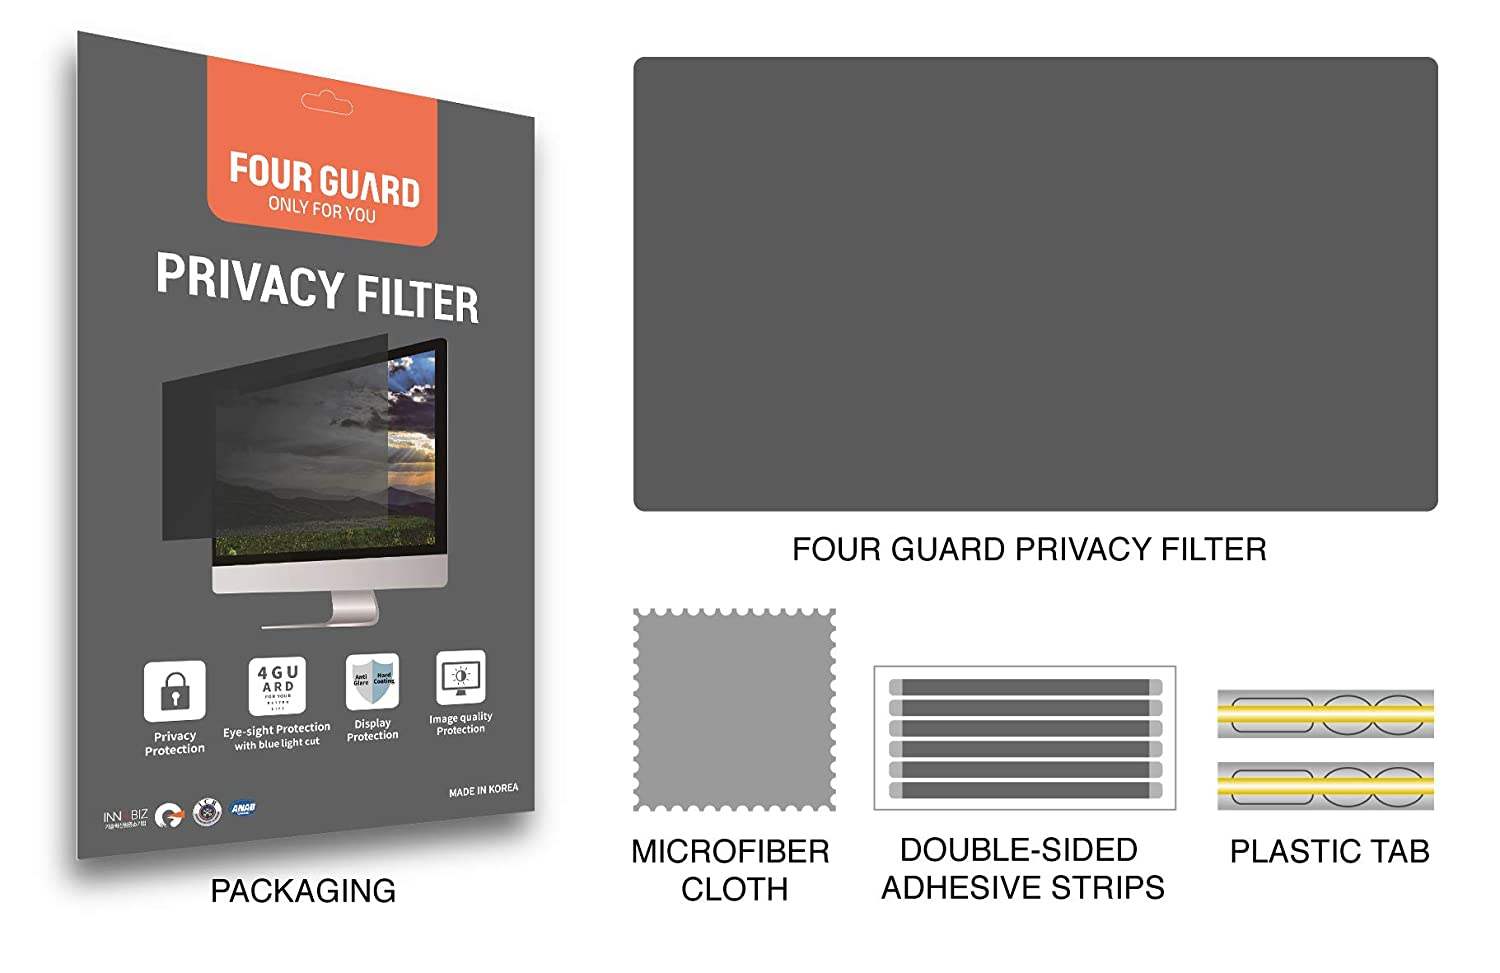 Privacy Protection Blue Light Reduction Anti Glare Anti Scratch Protector Film Four Guard Privacy Screen Filter for Computer Monitor 23.6 Inch 16:9 Widescreen